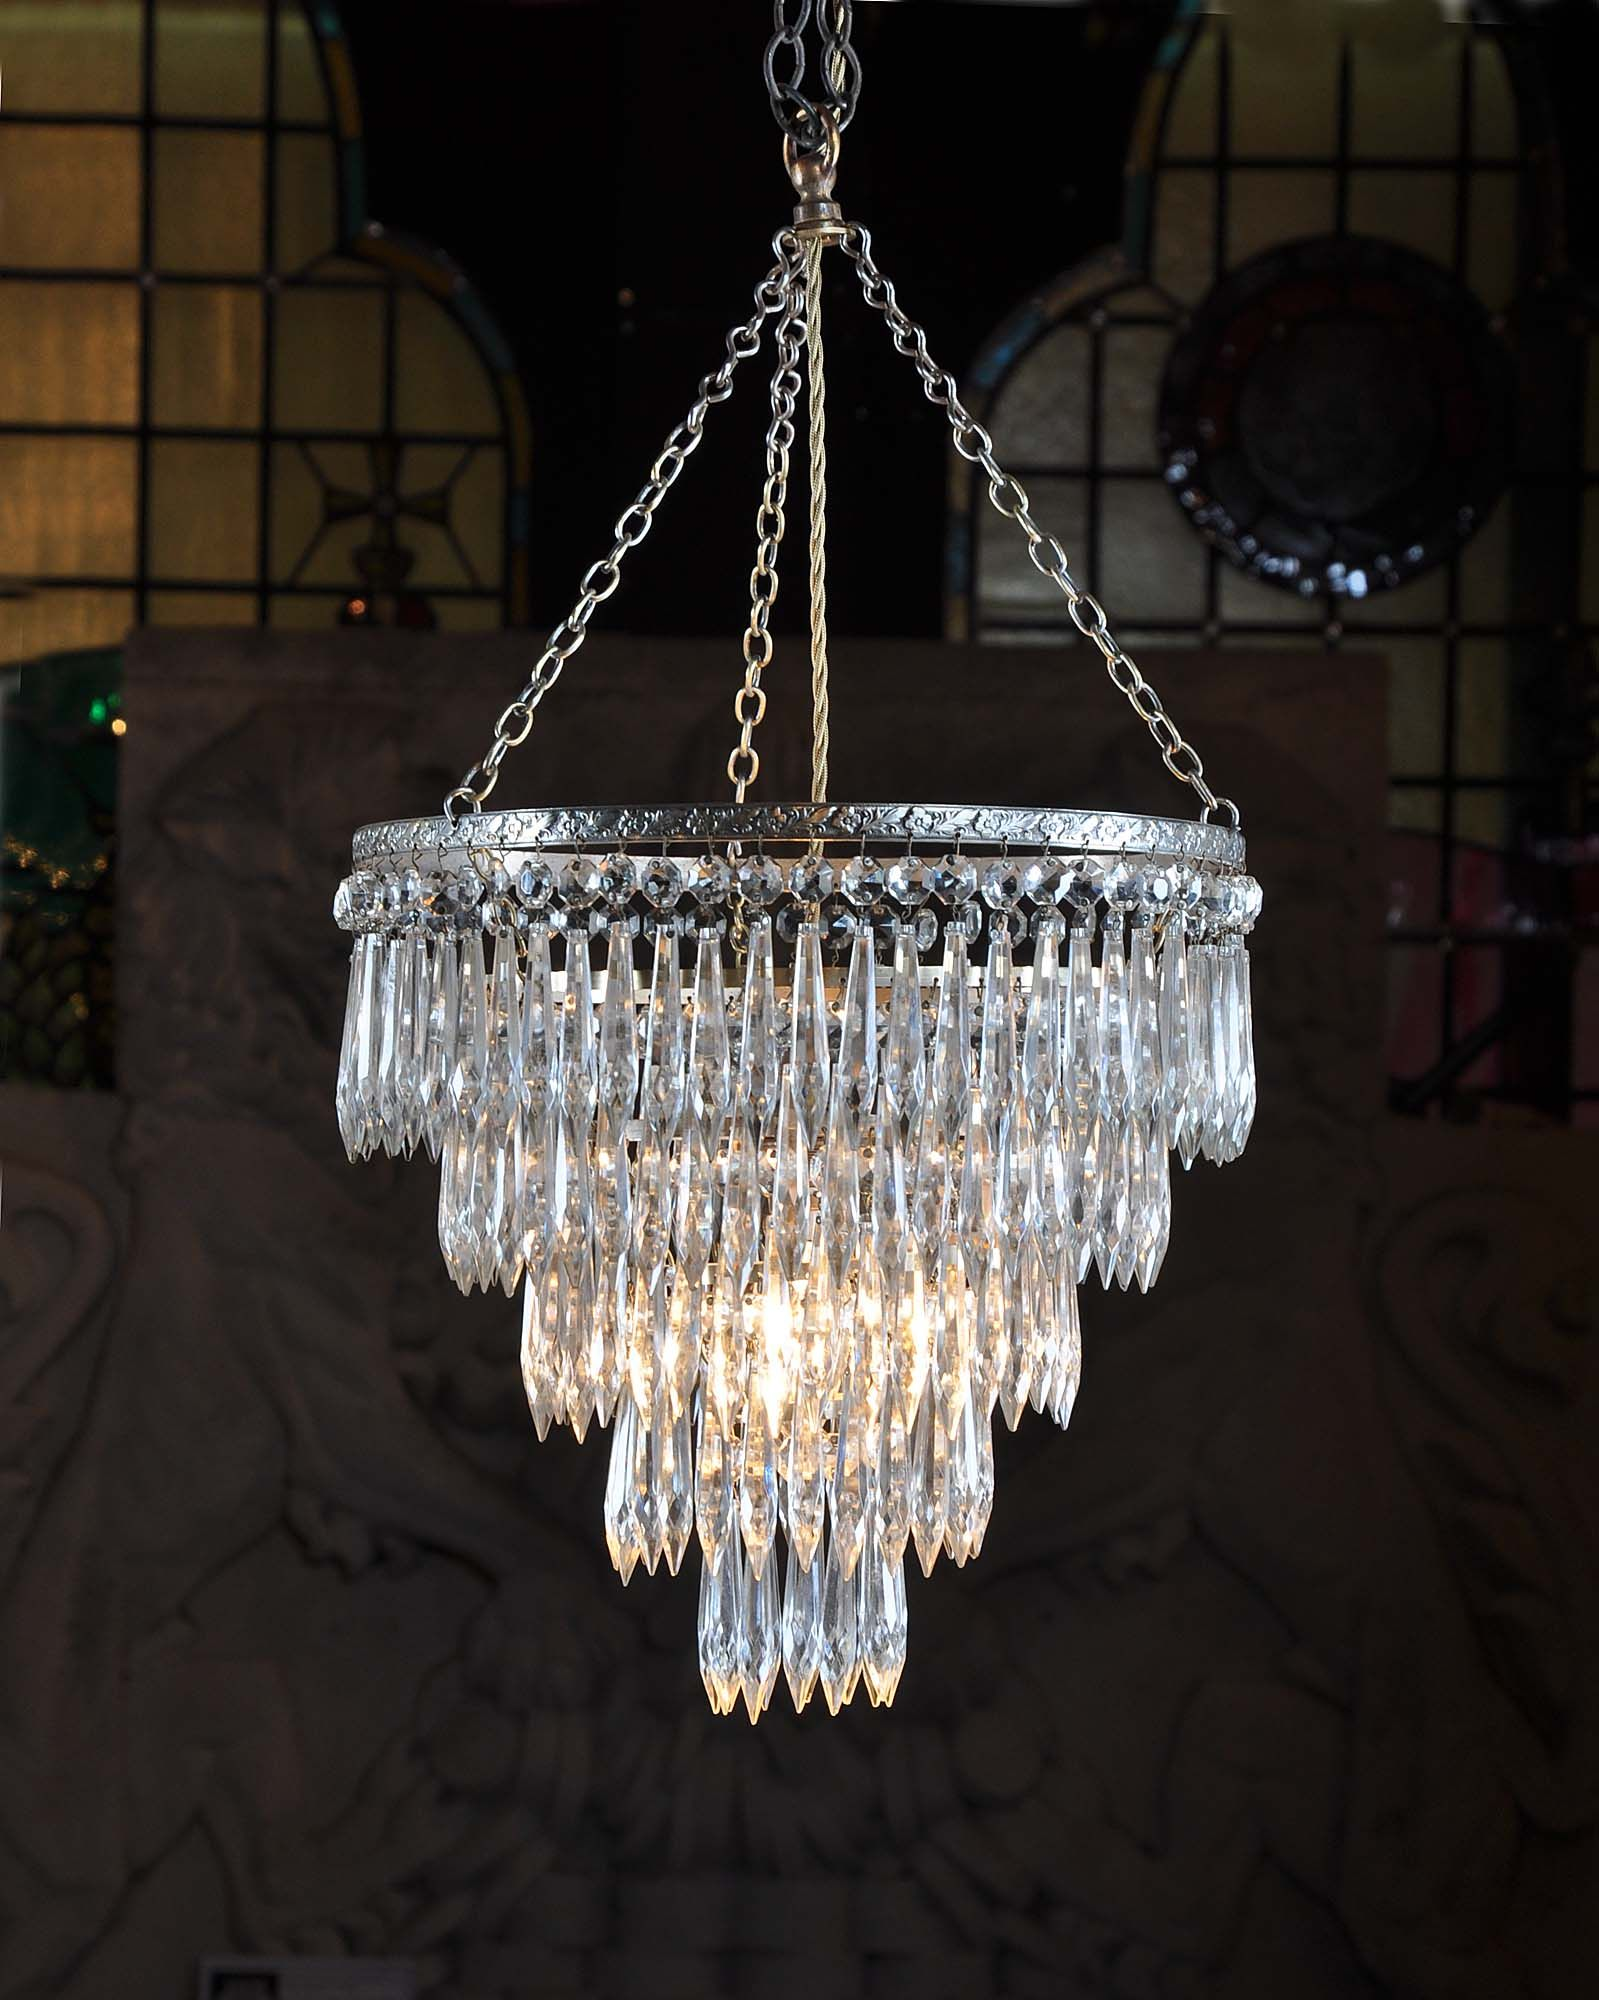 Small antique cut glass chandelier antique chandeliers pinterest small antique cut glass chandelier aloadofball Gallery